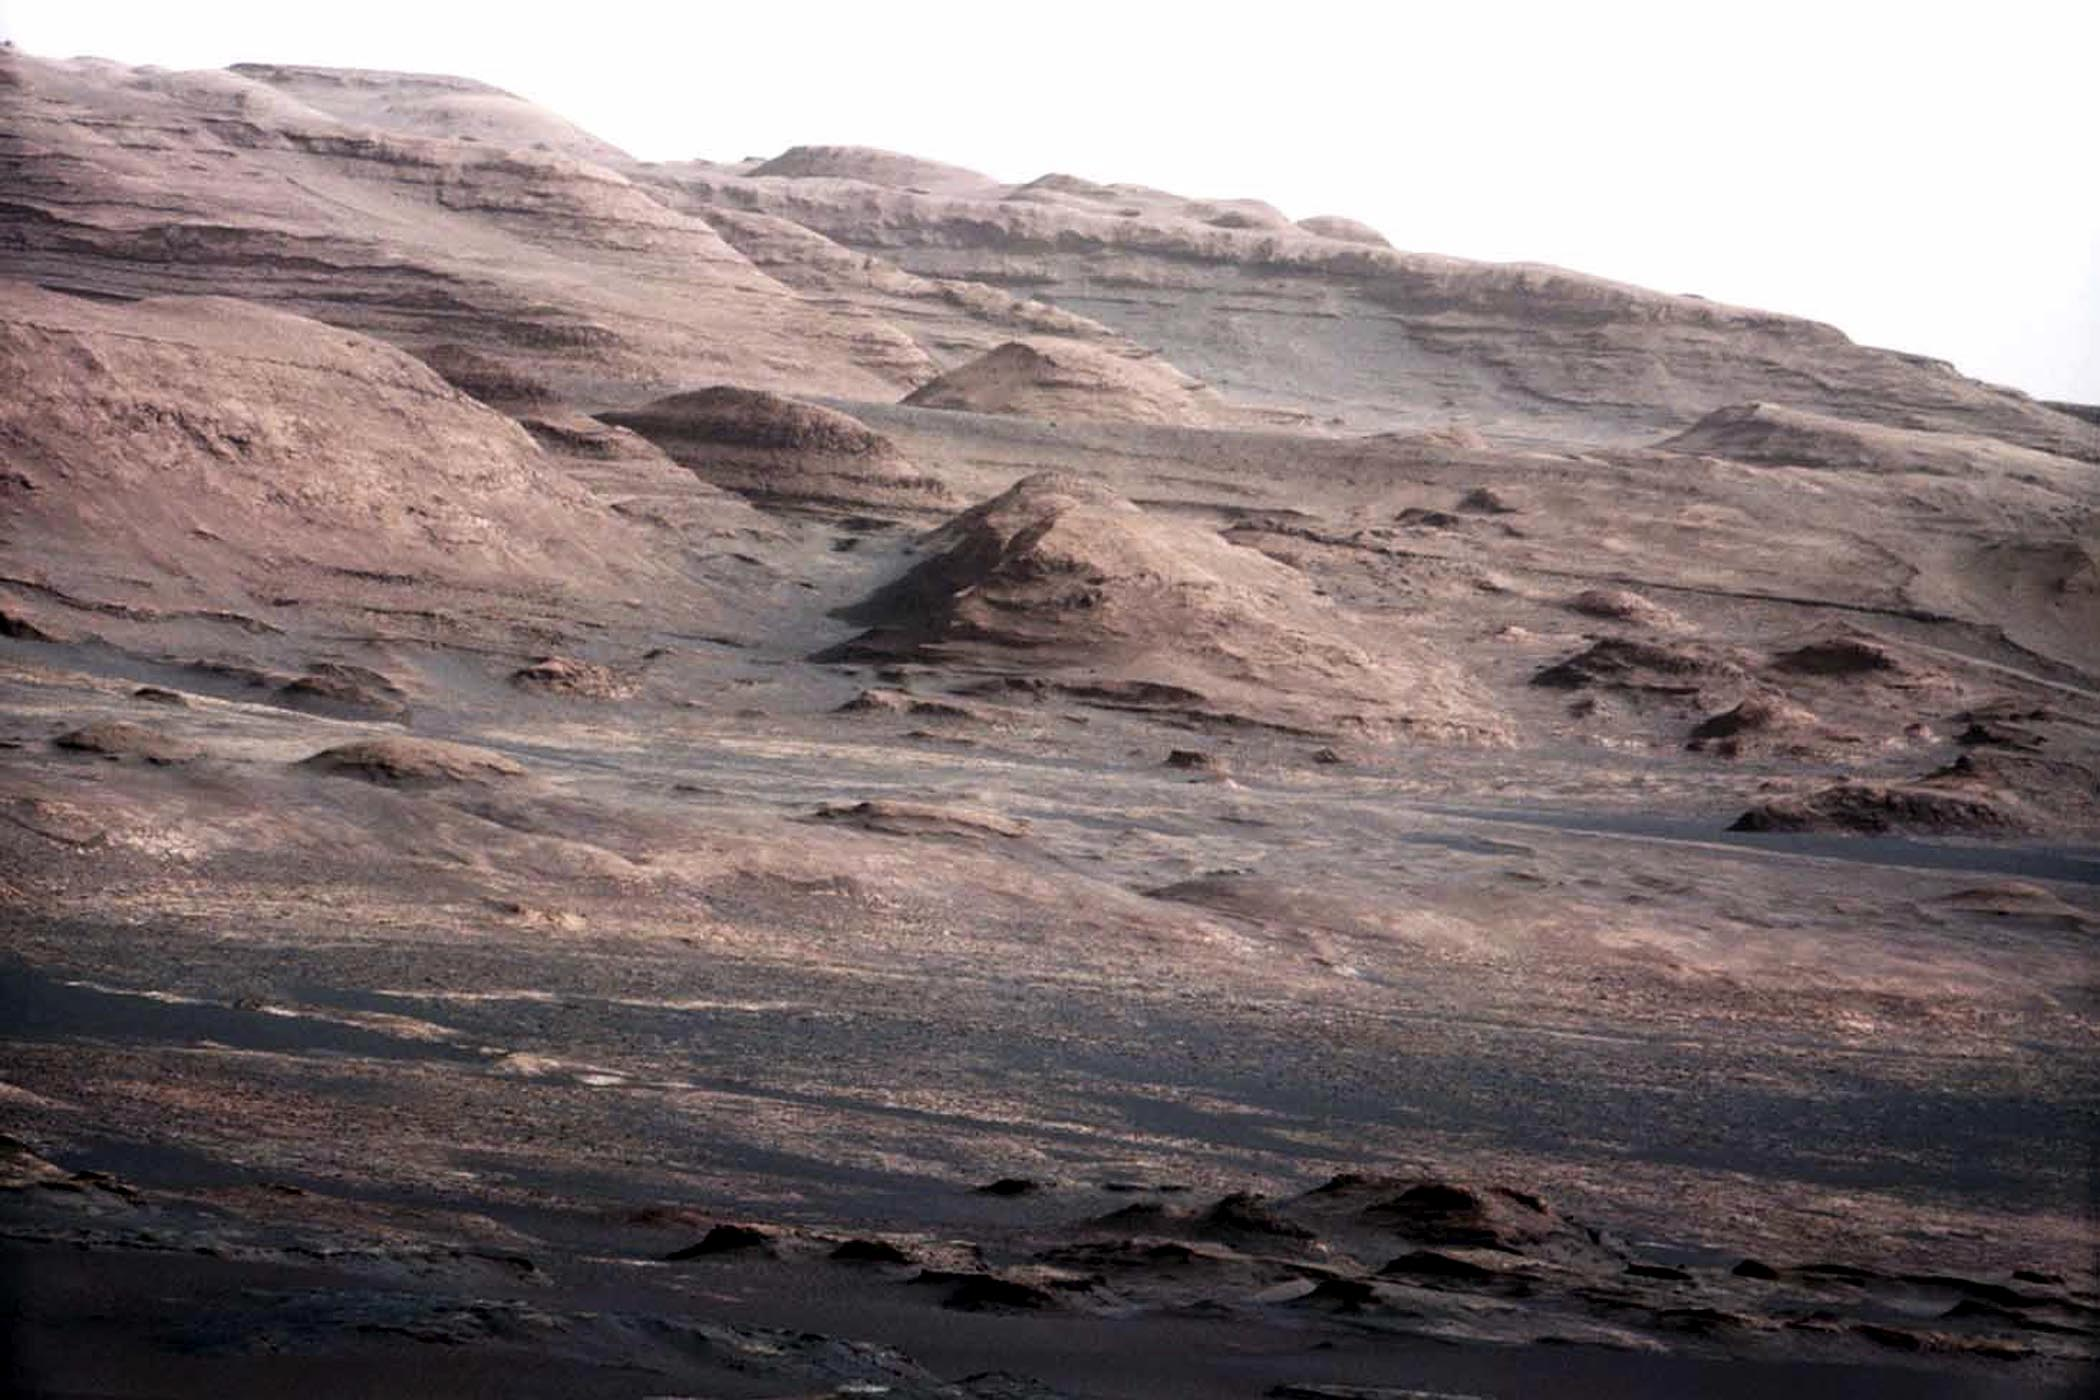 A detailed telephoto view from Curiosity shows Mount Sharp. The rover was expected to reach the 3.4-mile-high peak in February 2013, and the layered surface of the mountain should yield information to scientists on the planet's geological history.